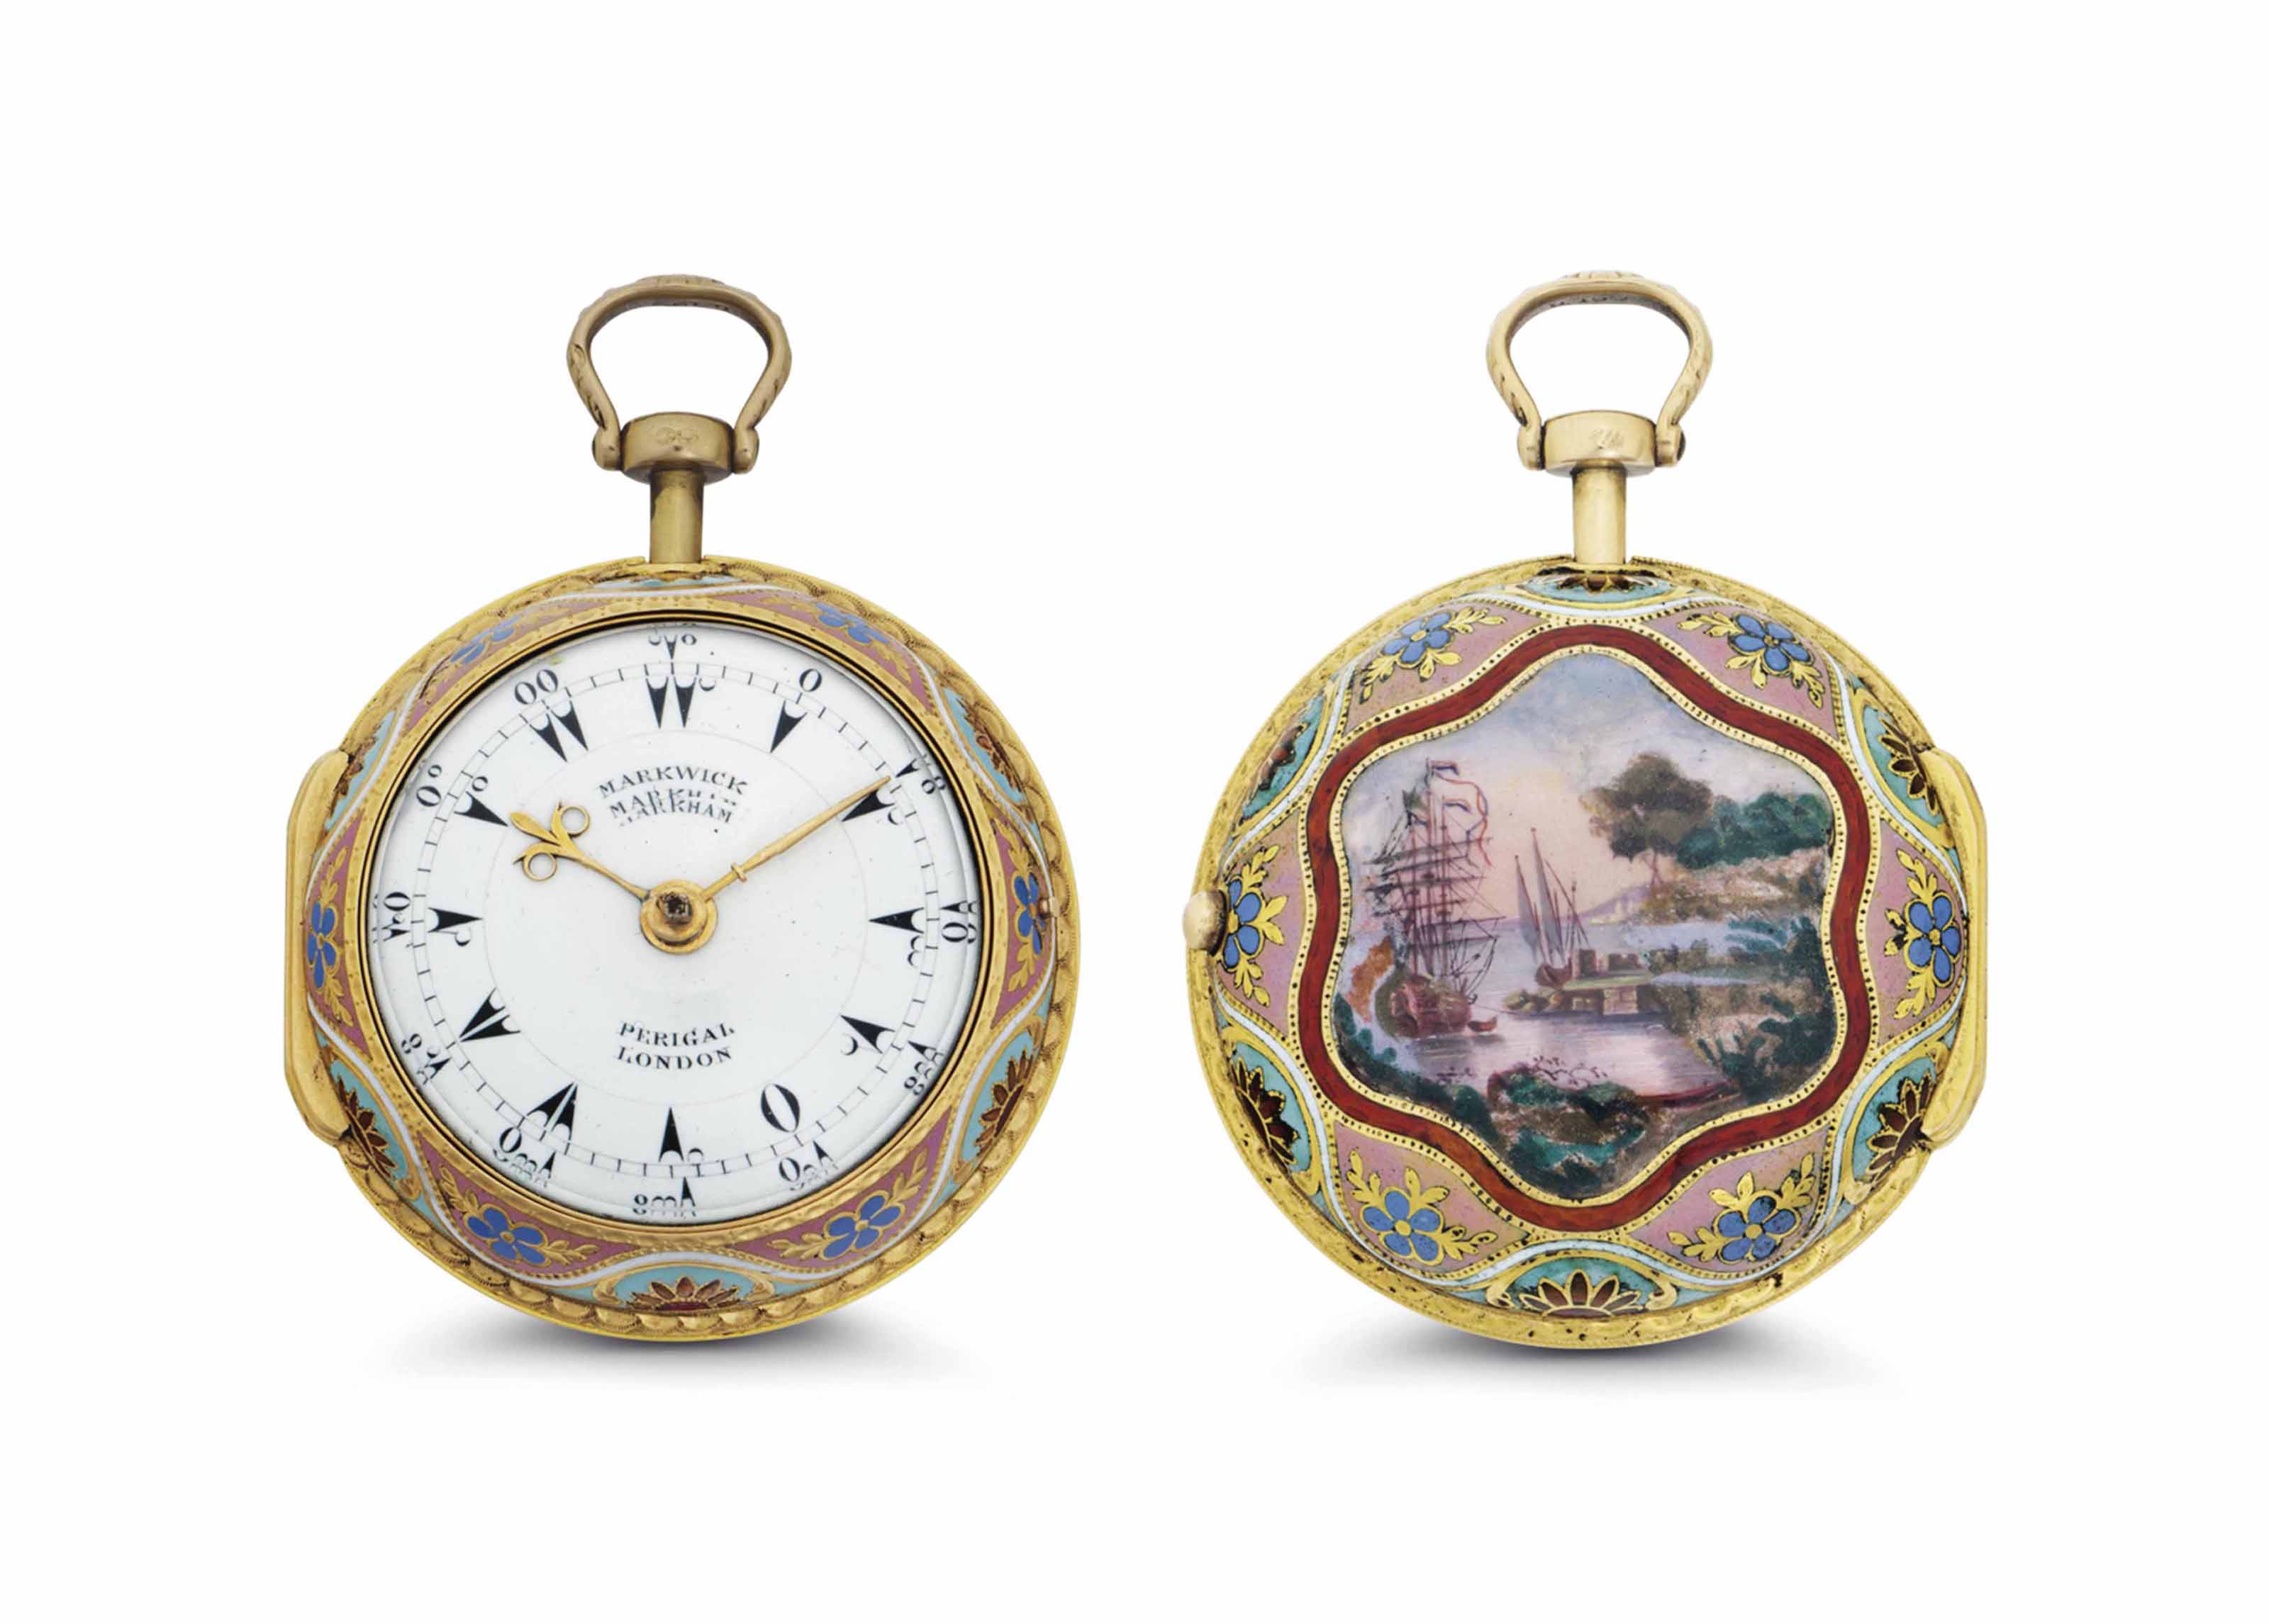 Markwich Markham, Perigal. A Fine 18k Gold and Enamel Pair Case Verge Watch, Made for the Turkish Market